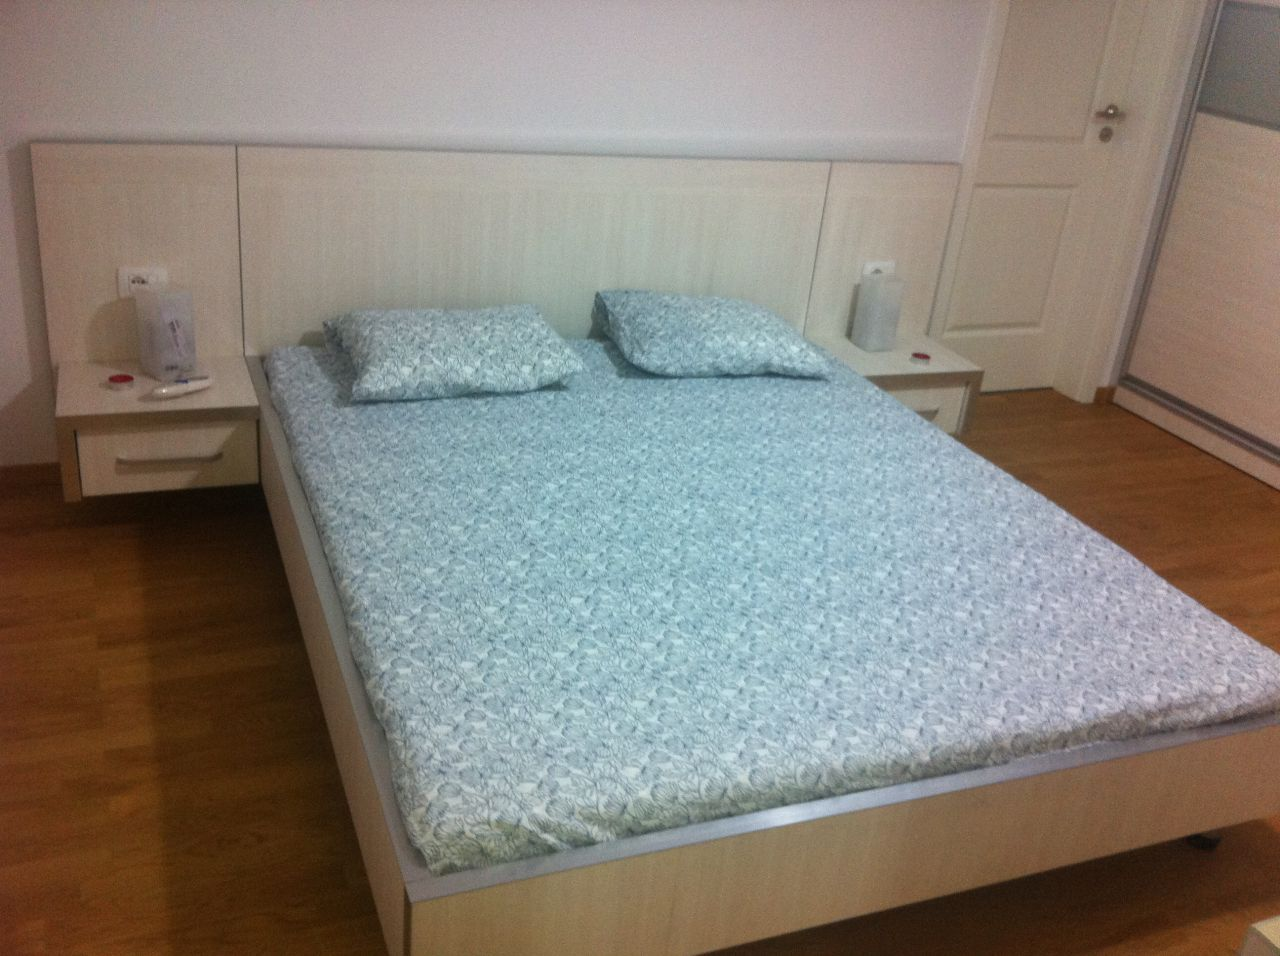 Property for rent in Tirana